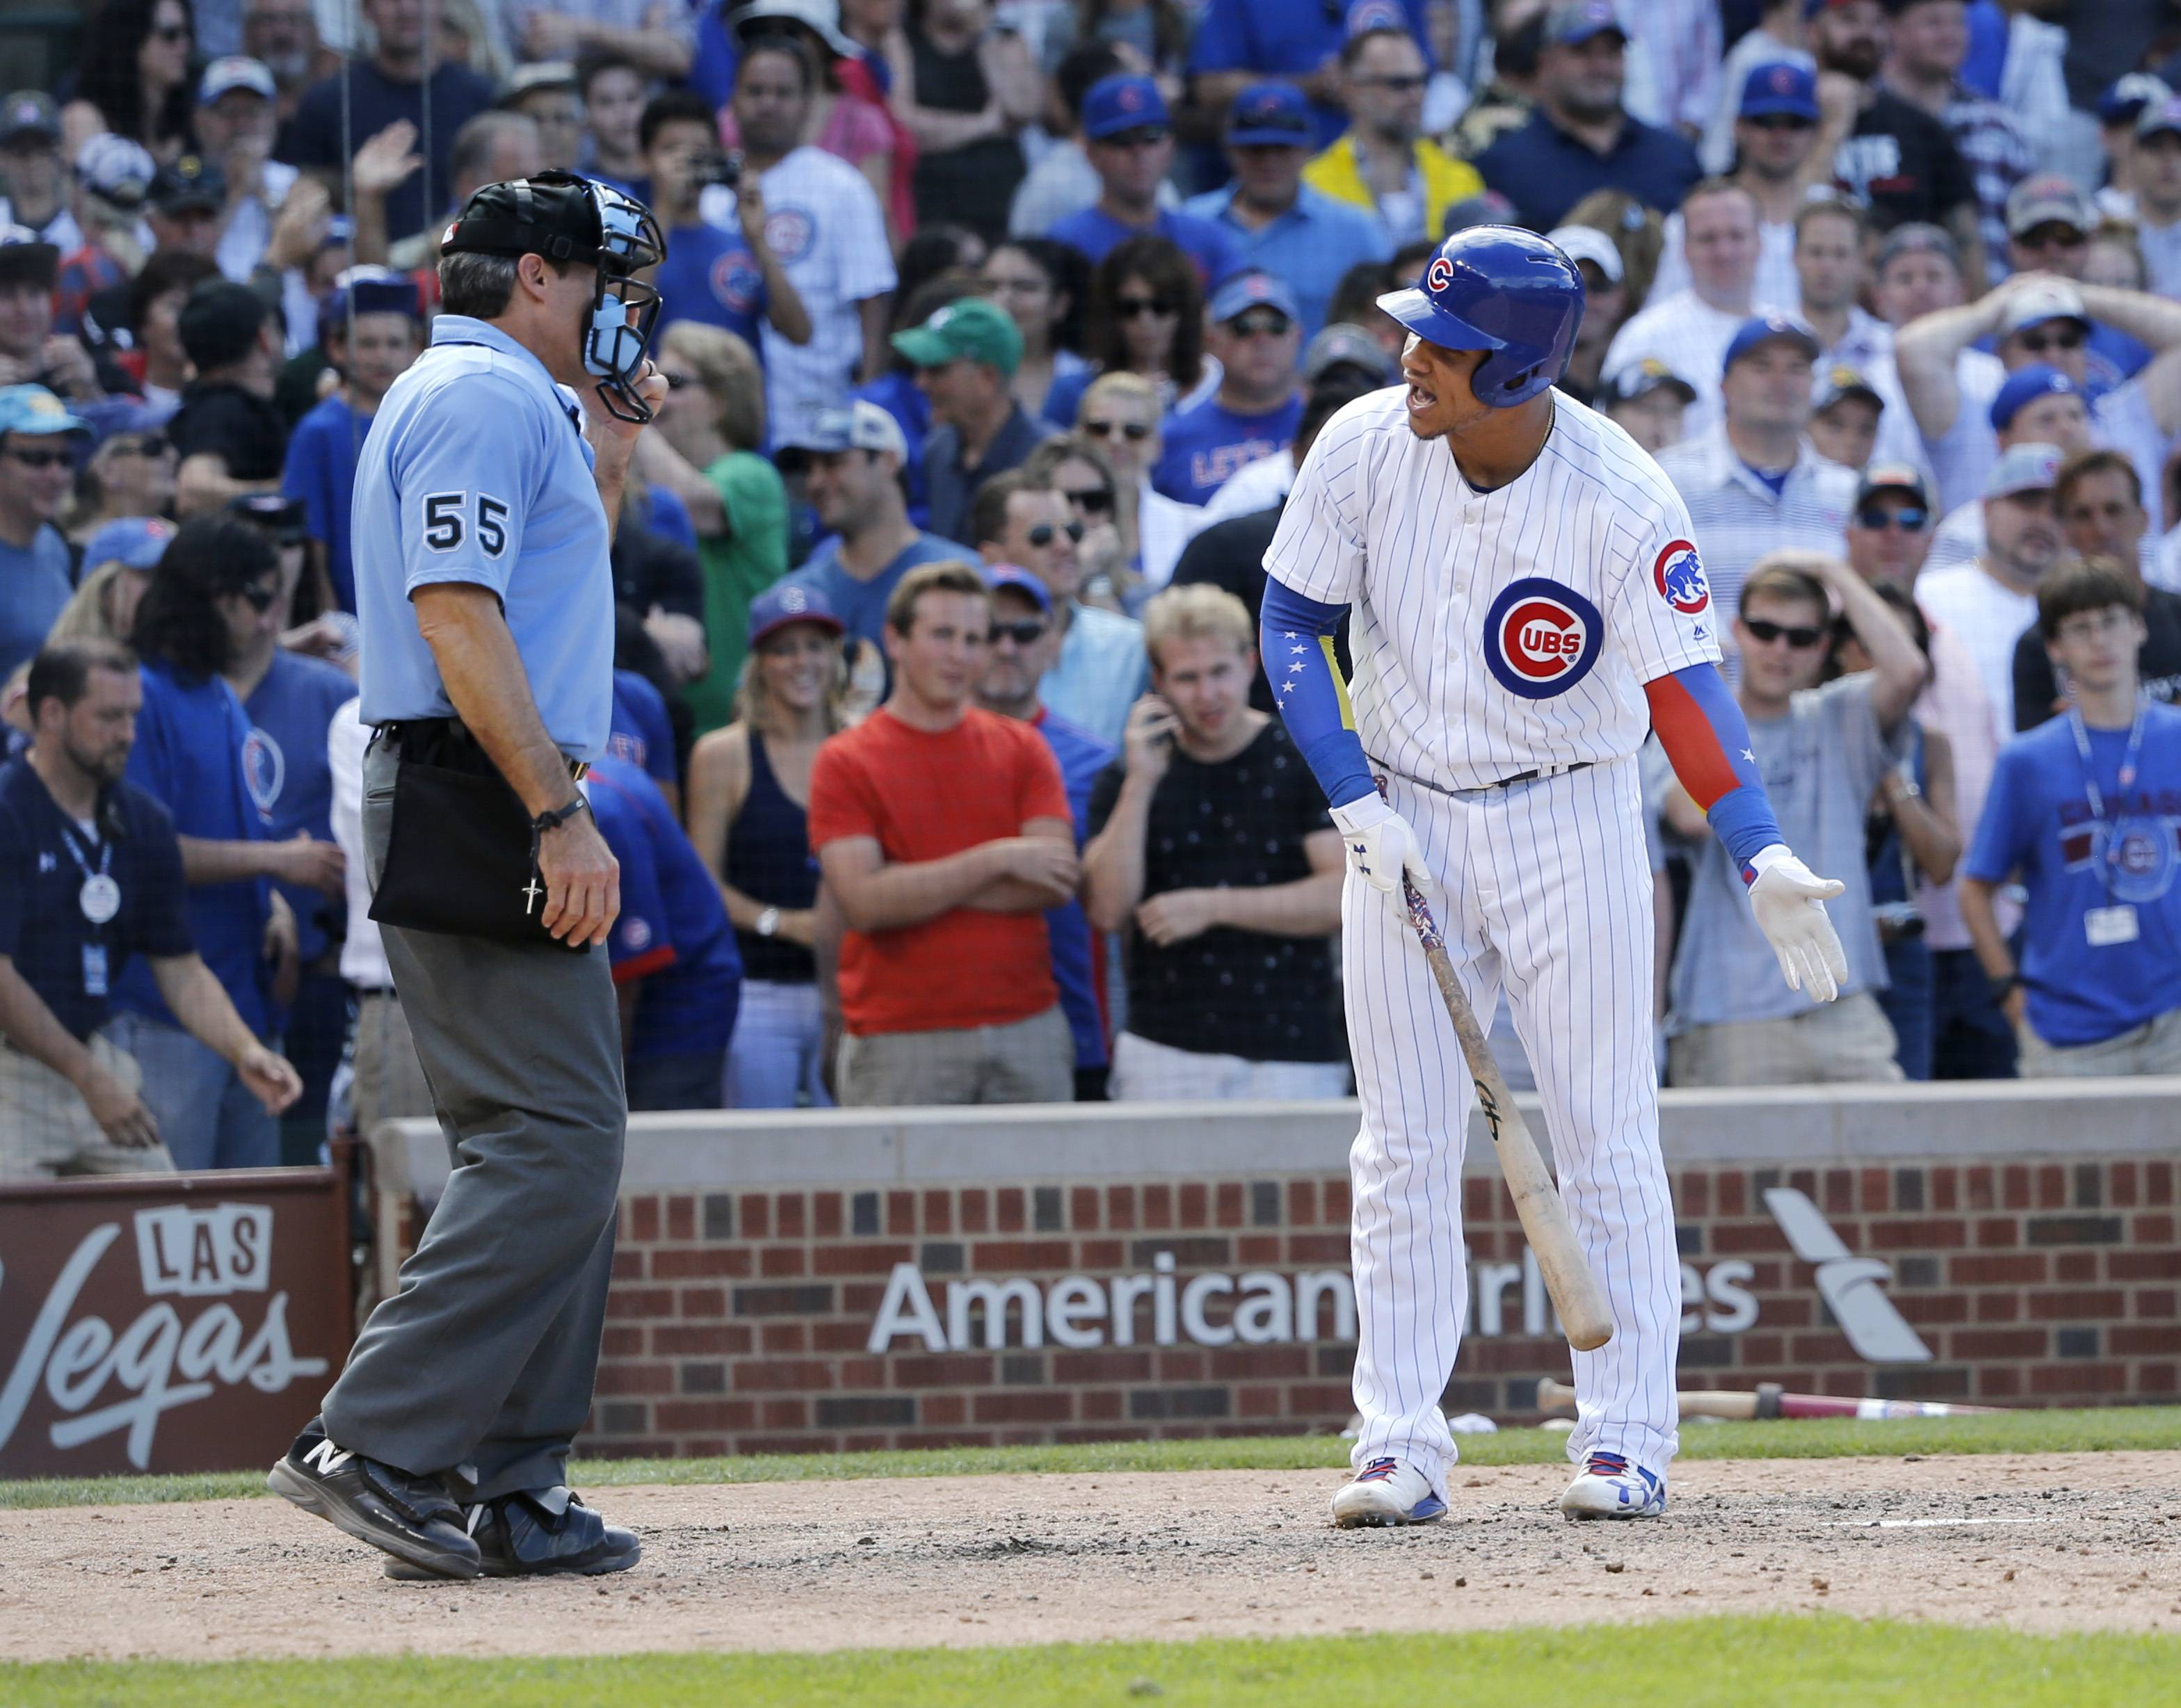 Chicago Cubs' Willson Contreras, right, argues with home plate umpire Angel Hernandez after Hernandez called him out on strikes to end a baseball game against the Chicago White Sox, Monday, July 24, 2017, in Chicago.